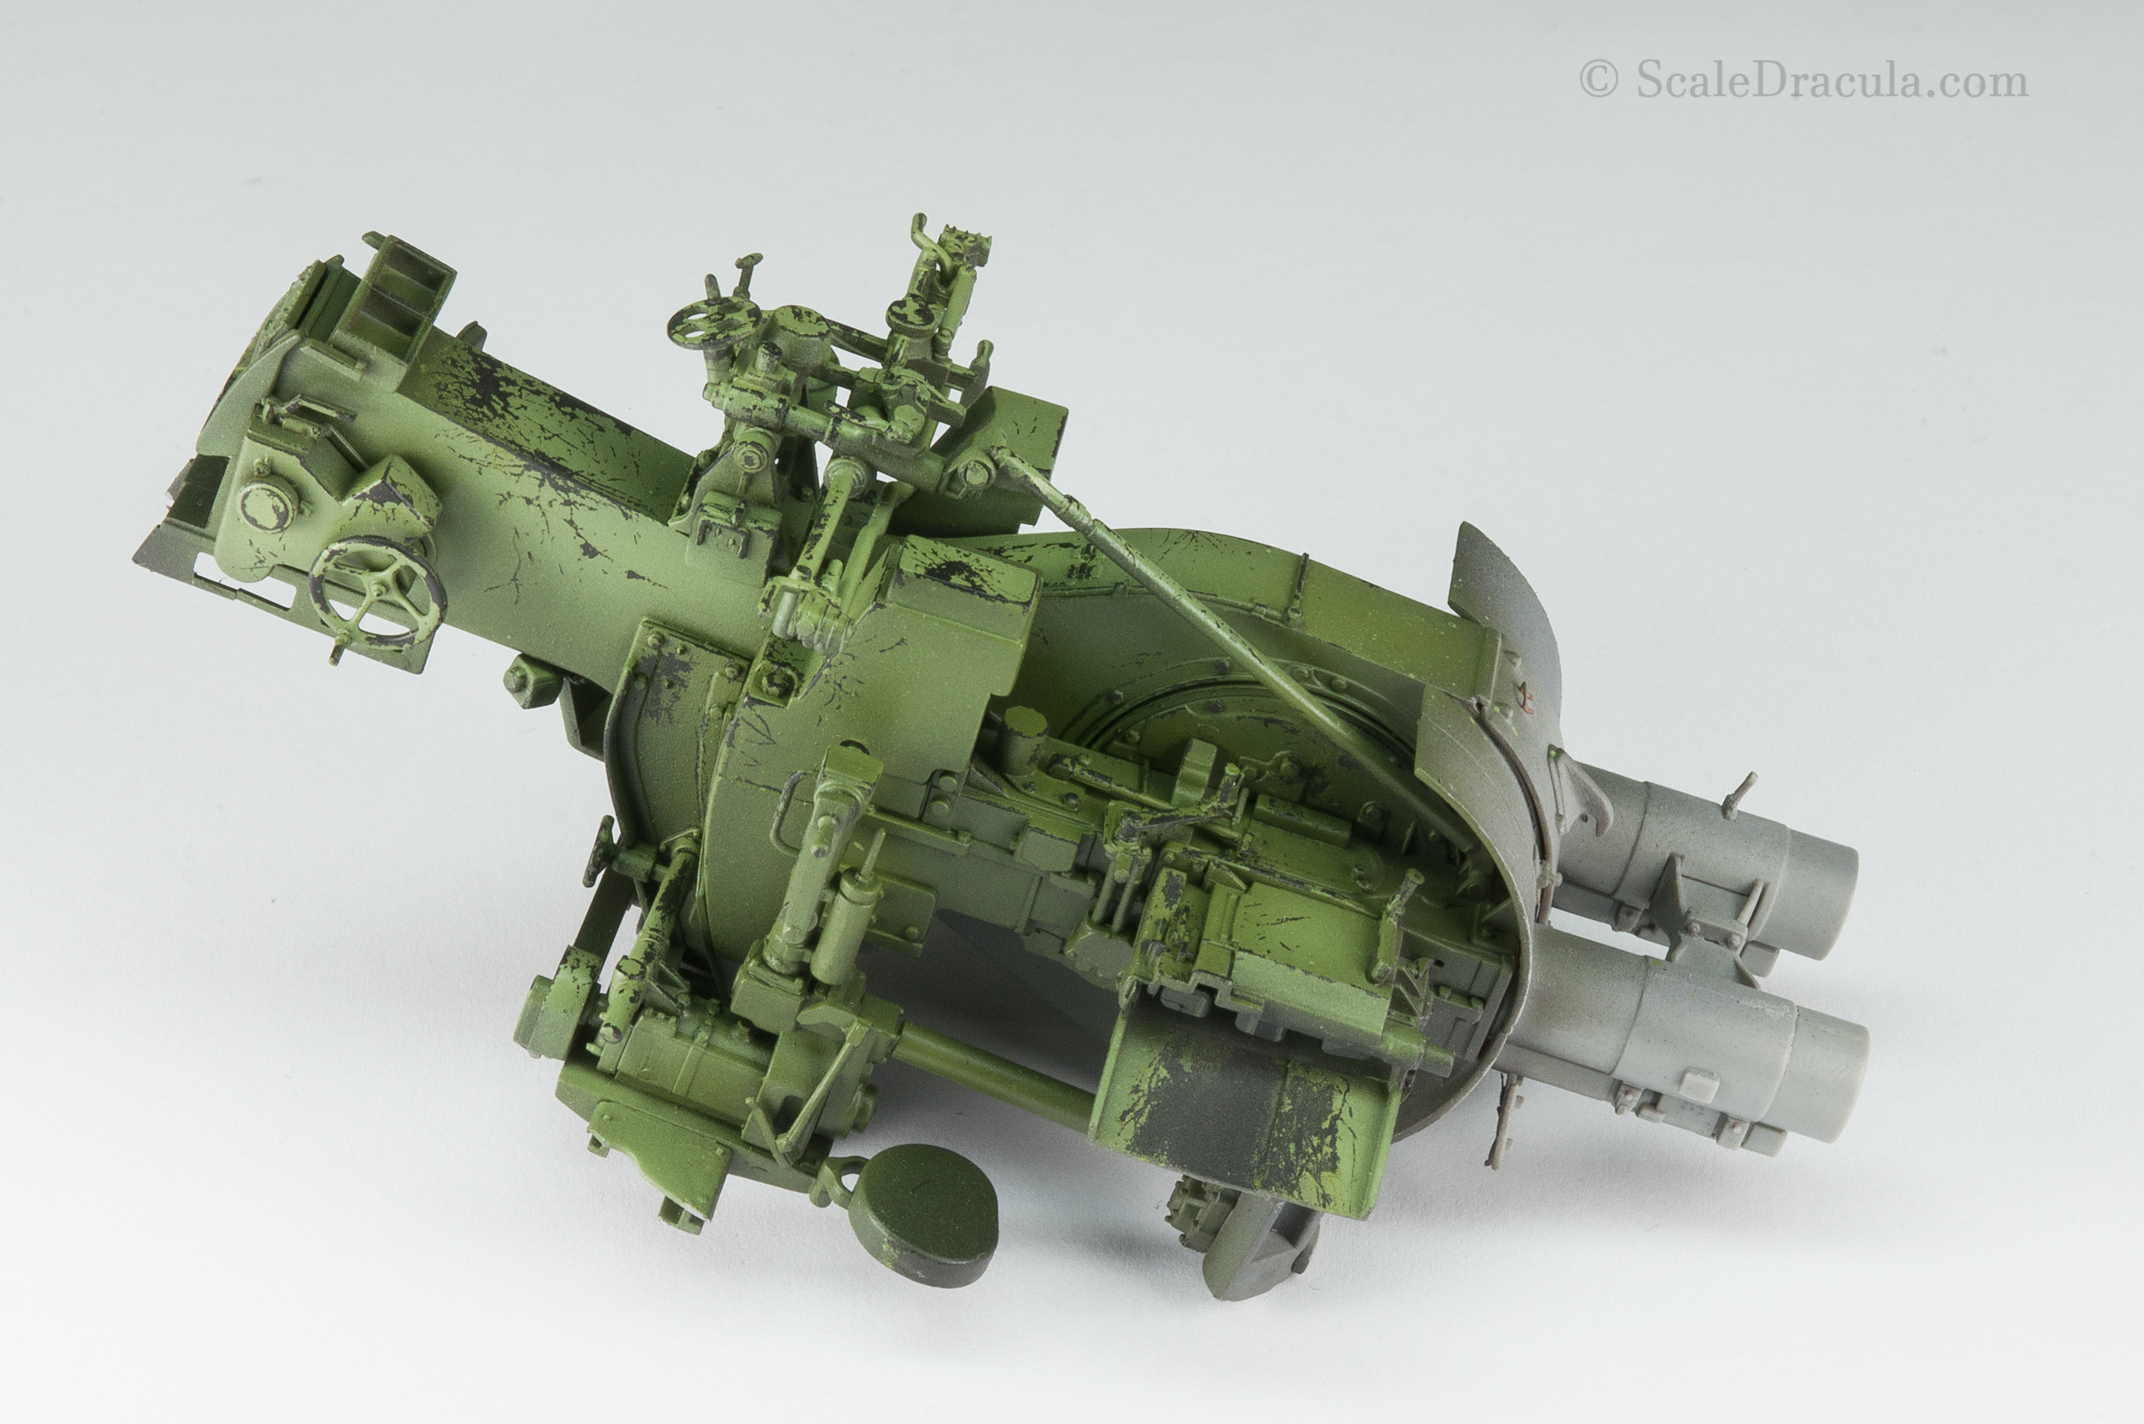 Cannon after chipping, ZSU-57 by TAKOM